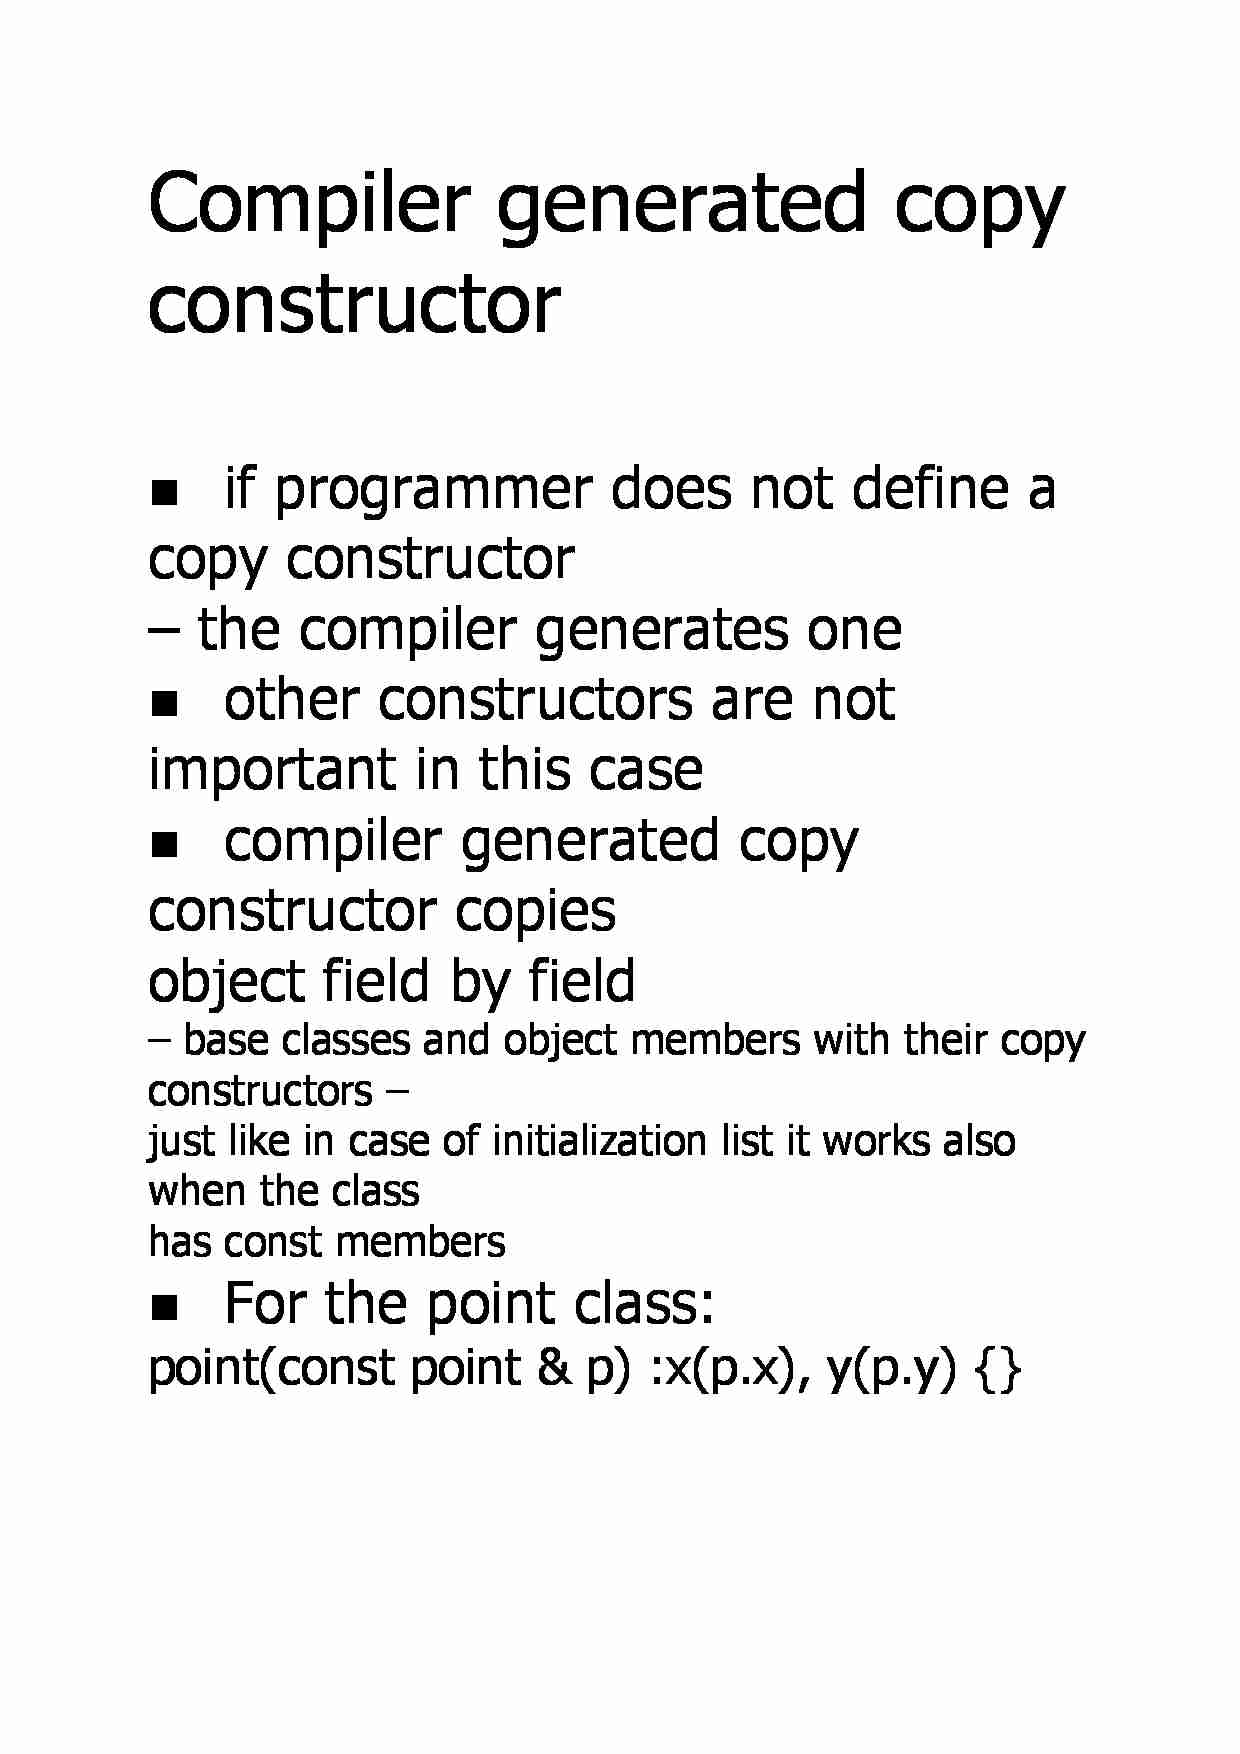 Compiler generated copy constructor - strona 1